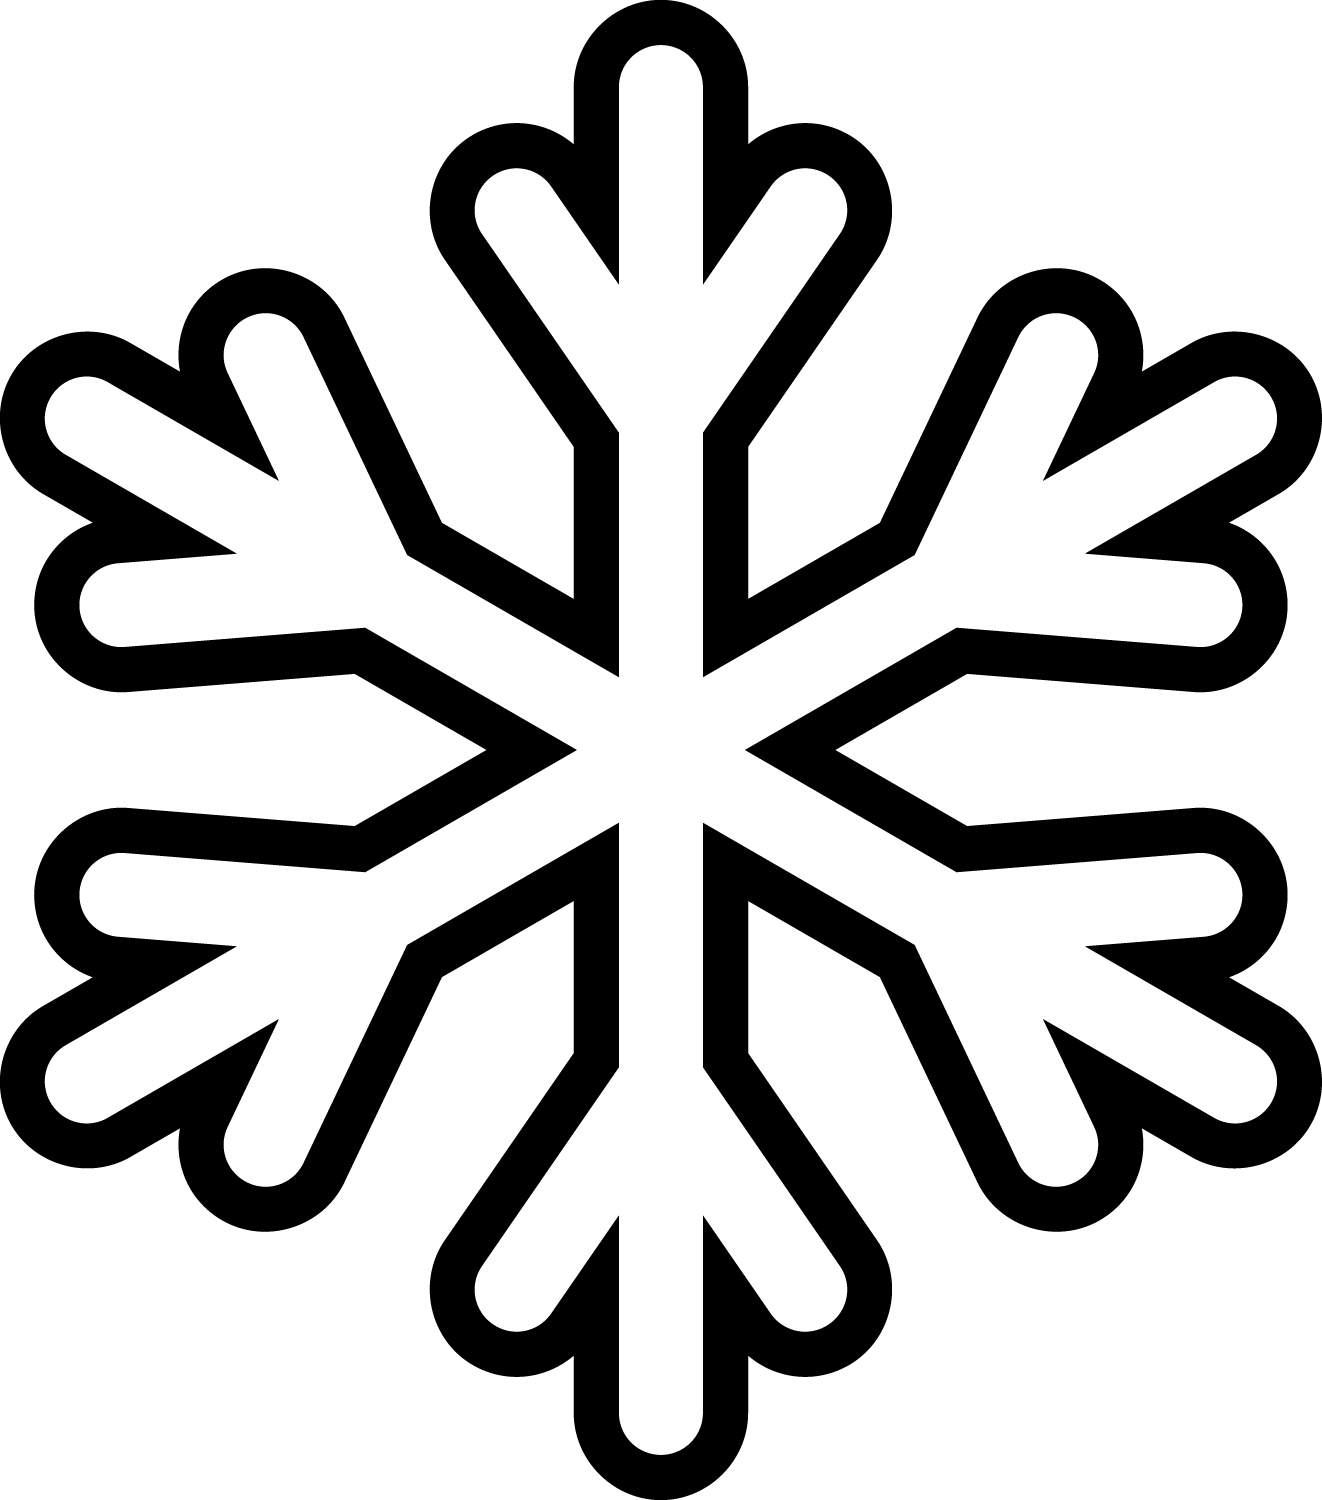 Fancy black snowflake clipart picture transparent 28+ Collection of Snowflake Drawing Black And White | High quality ... picture transparent